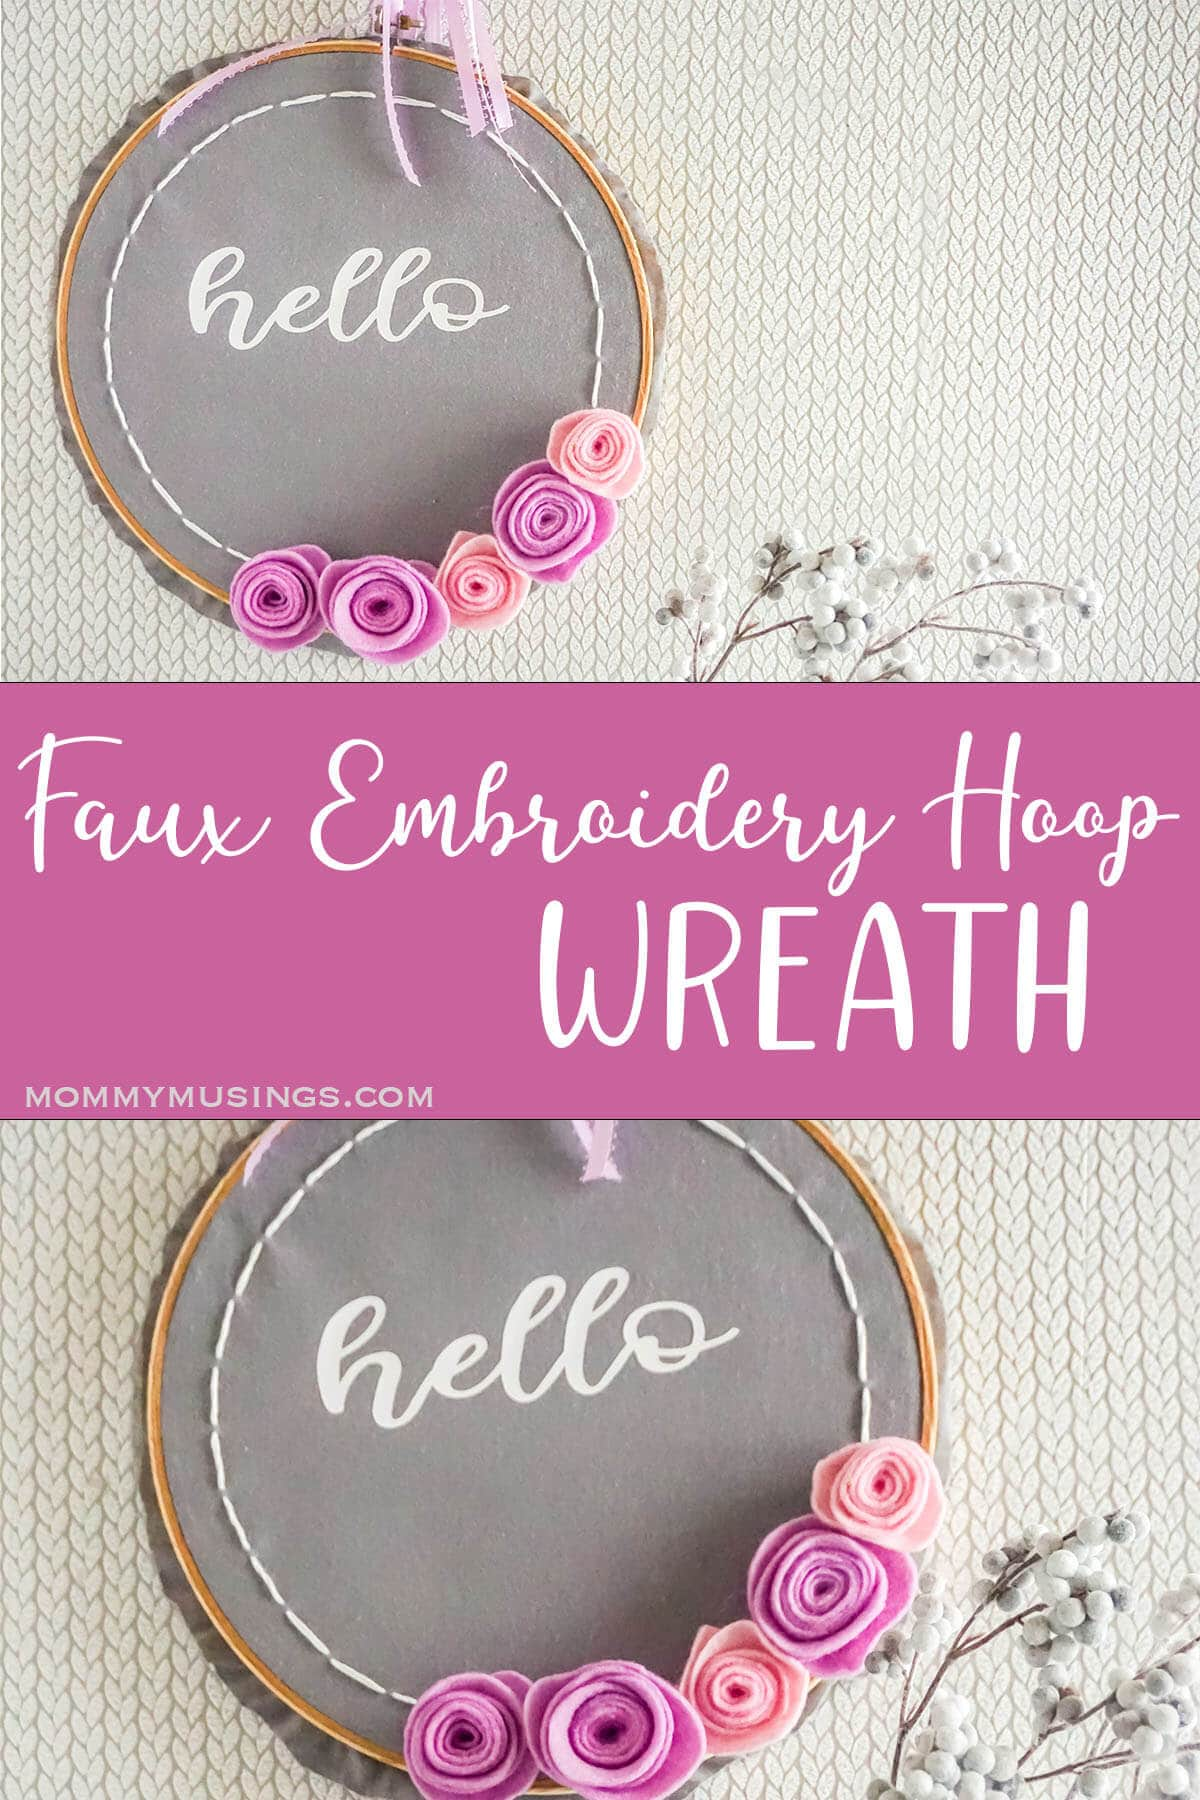 photo collage of easy embroidery hoop wreath craft for spring with text which reads faux embroidery hoop wreath